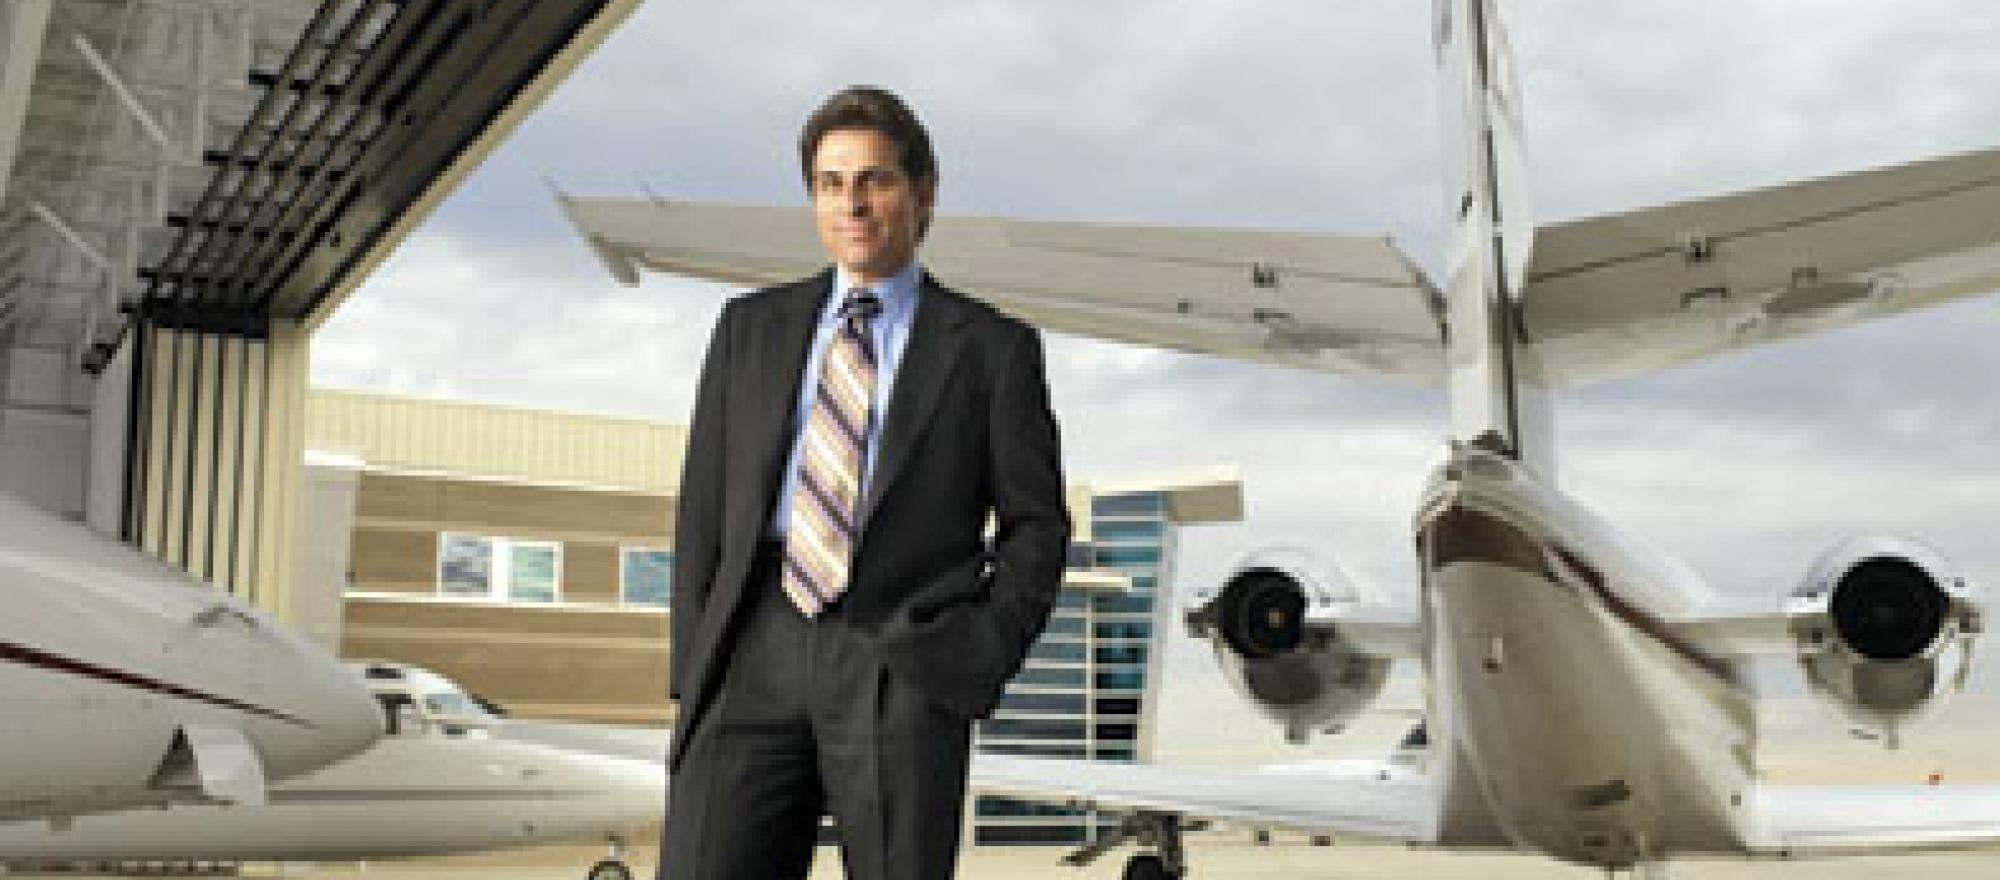 Kenn Ricci, who founded Flight Options and left the company in 2003, returned